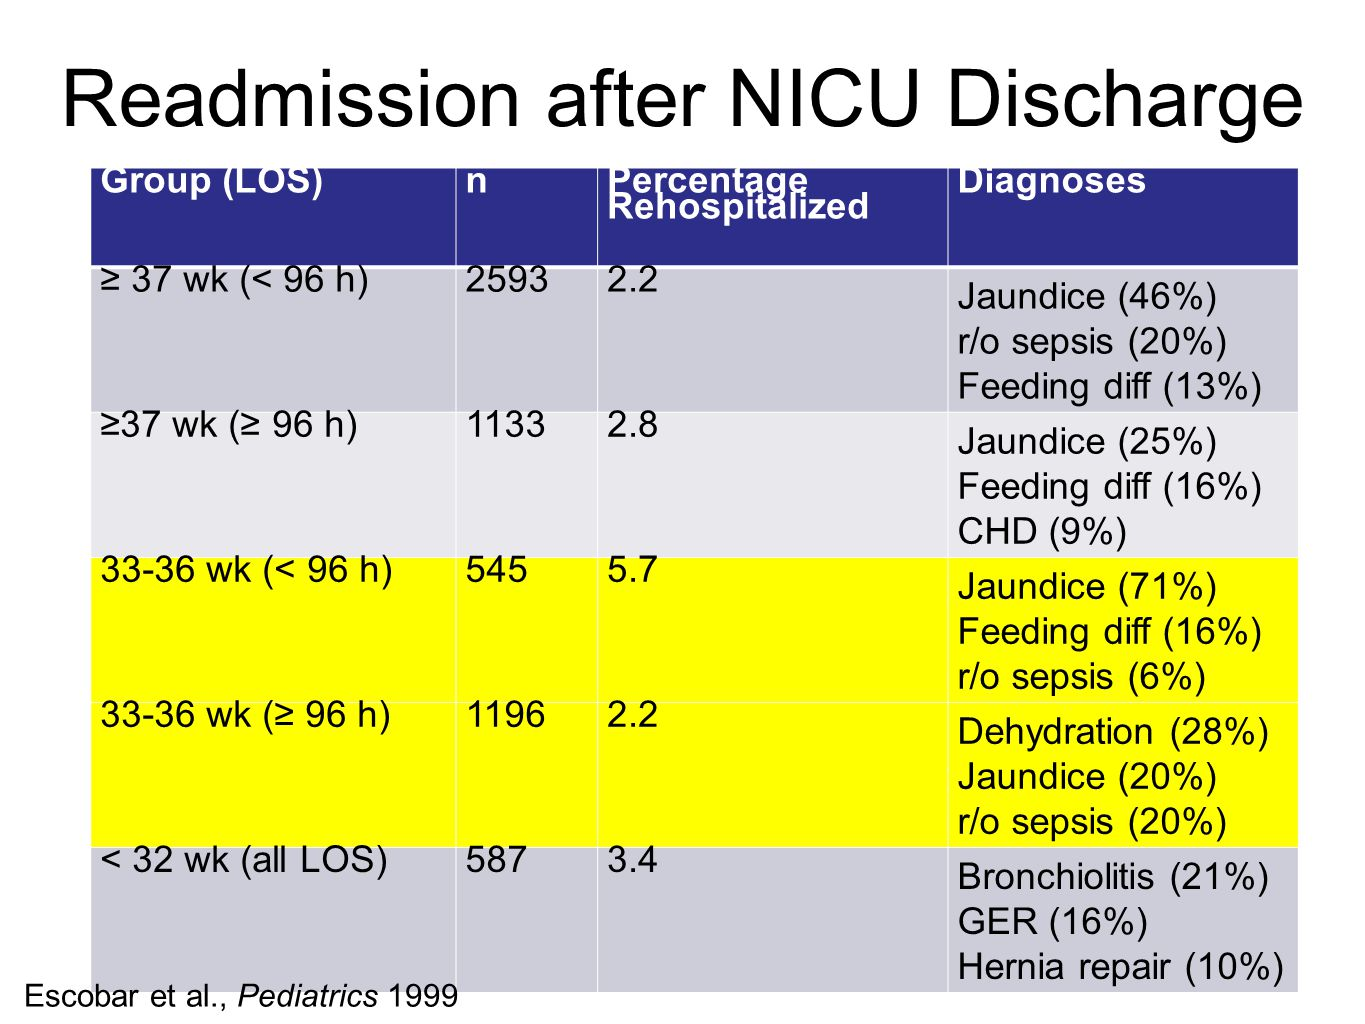 Readmission after NICU Discharge Group (LOS)n Percentage Rehospitalized Diagnoses ≥ 37 wk (< 96 h)25932.2 Jaundice (46%) r/o sepsis (20%) Feeding diff (13%) ≥37 wk (≥ 96 h)11332.8 Jaundice (25%) Feeding diff (16%) CHD (9%) 33-36 wk (< 96 h)5455.7 Jaundice (71%) Feeding diff (16%) r/o sepsis (6%) 33-36 wk (≥ 96 h)11962.2 Dehydration (28%) Jaundice (20%) r/o sepsis (20%) < 32 wk (all LOS)5873.4 Bronchiolitis (21%) GER (16%) Hernia repair (10%) Escobar et al., Pediatrics 1999